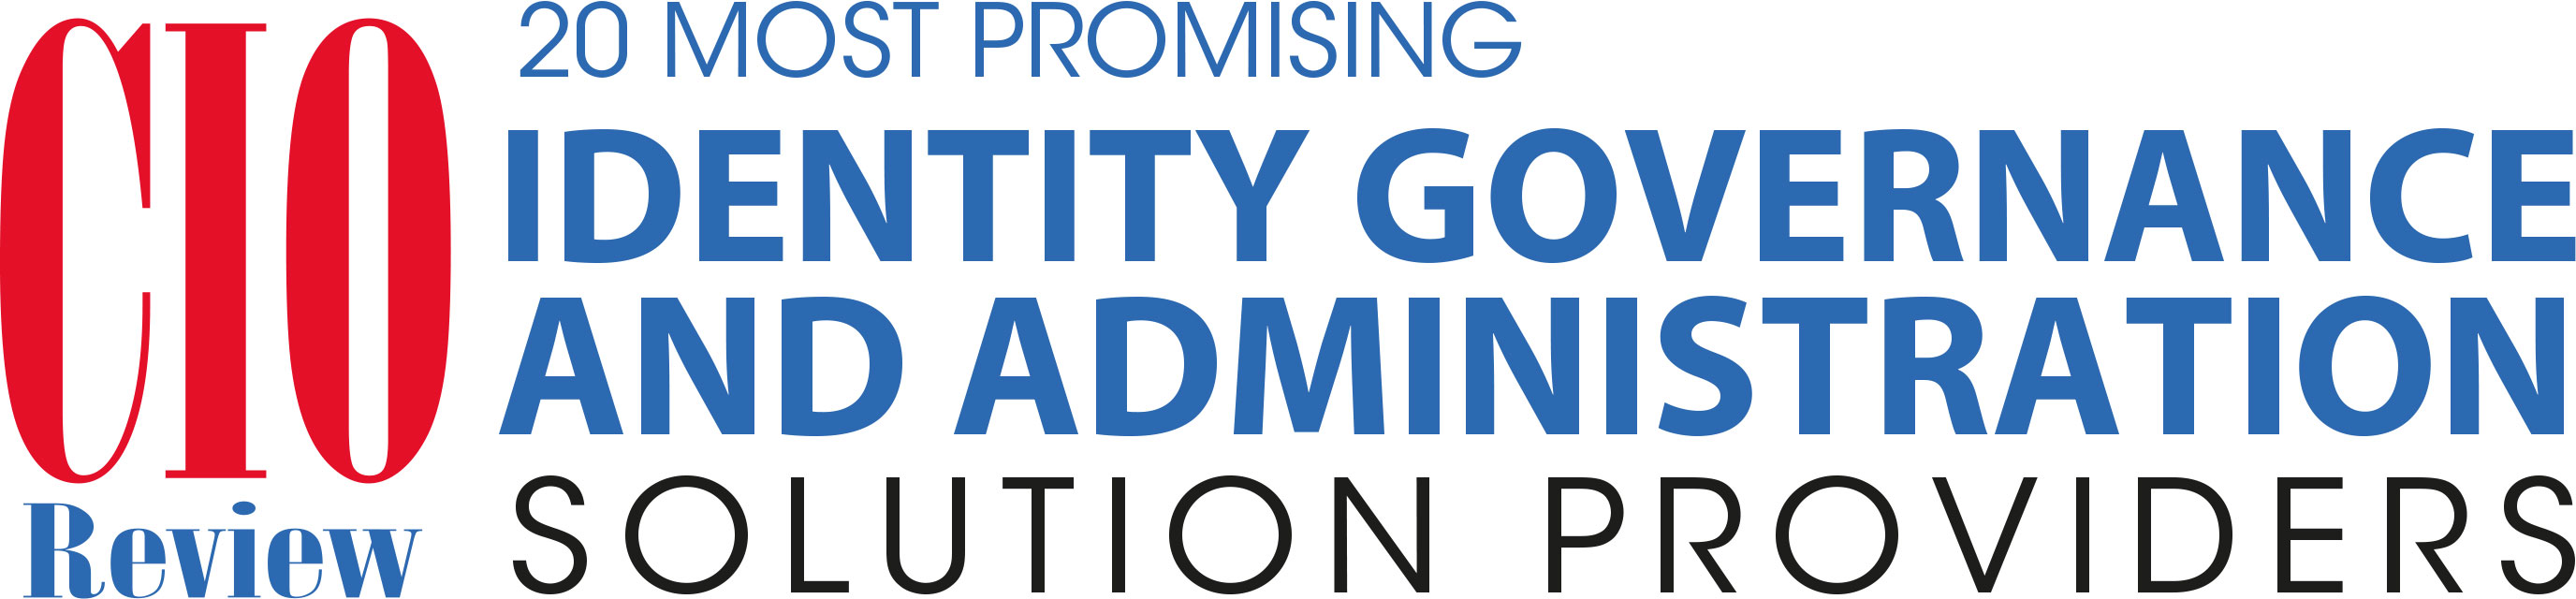 Top Identity Governance and Administration Solution Companies